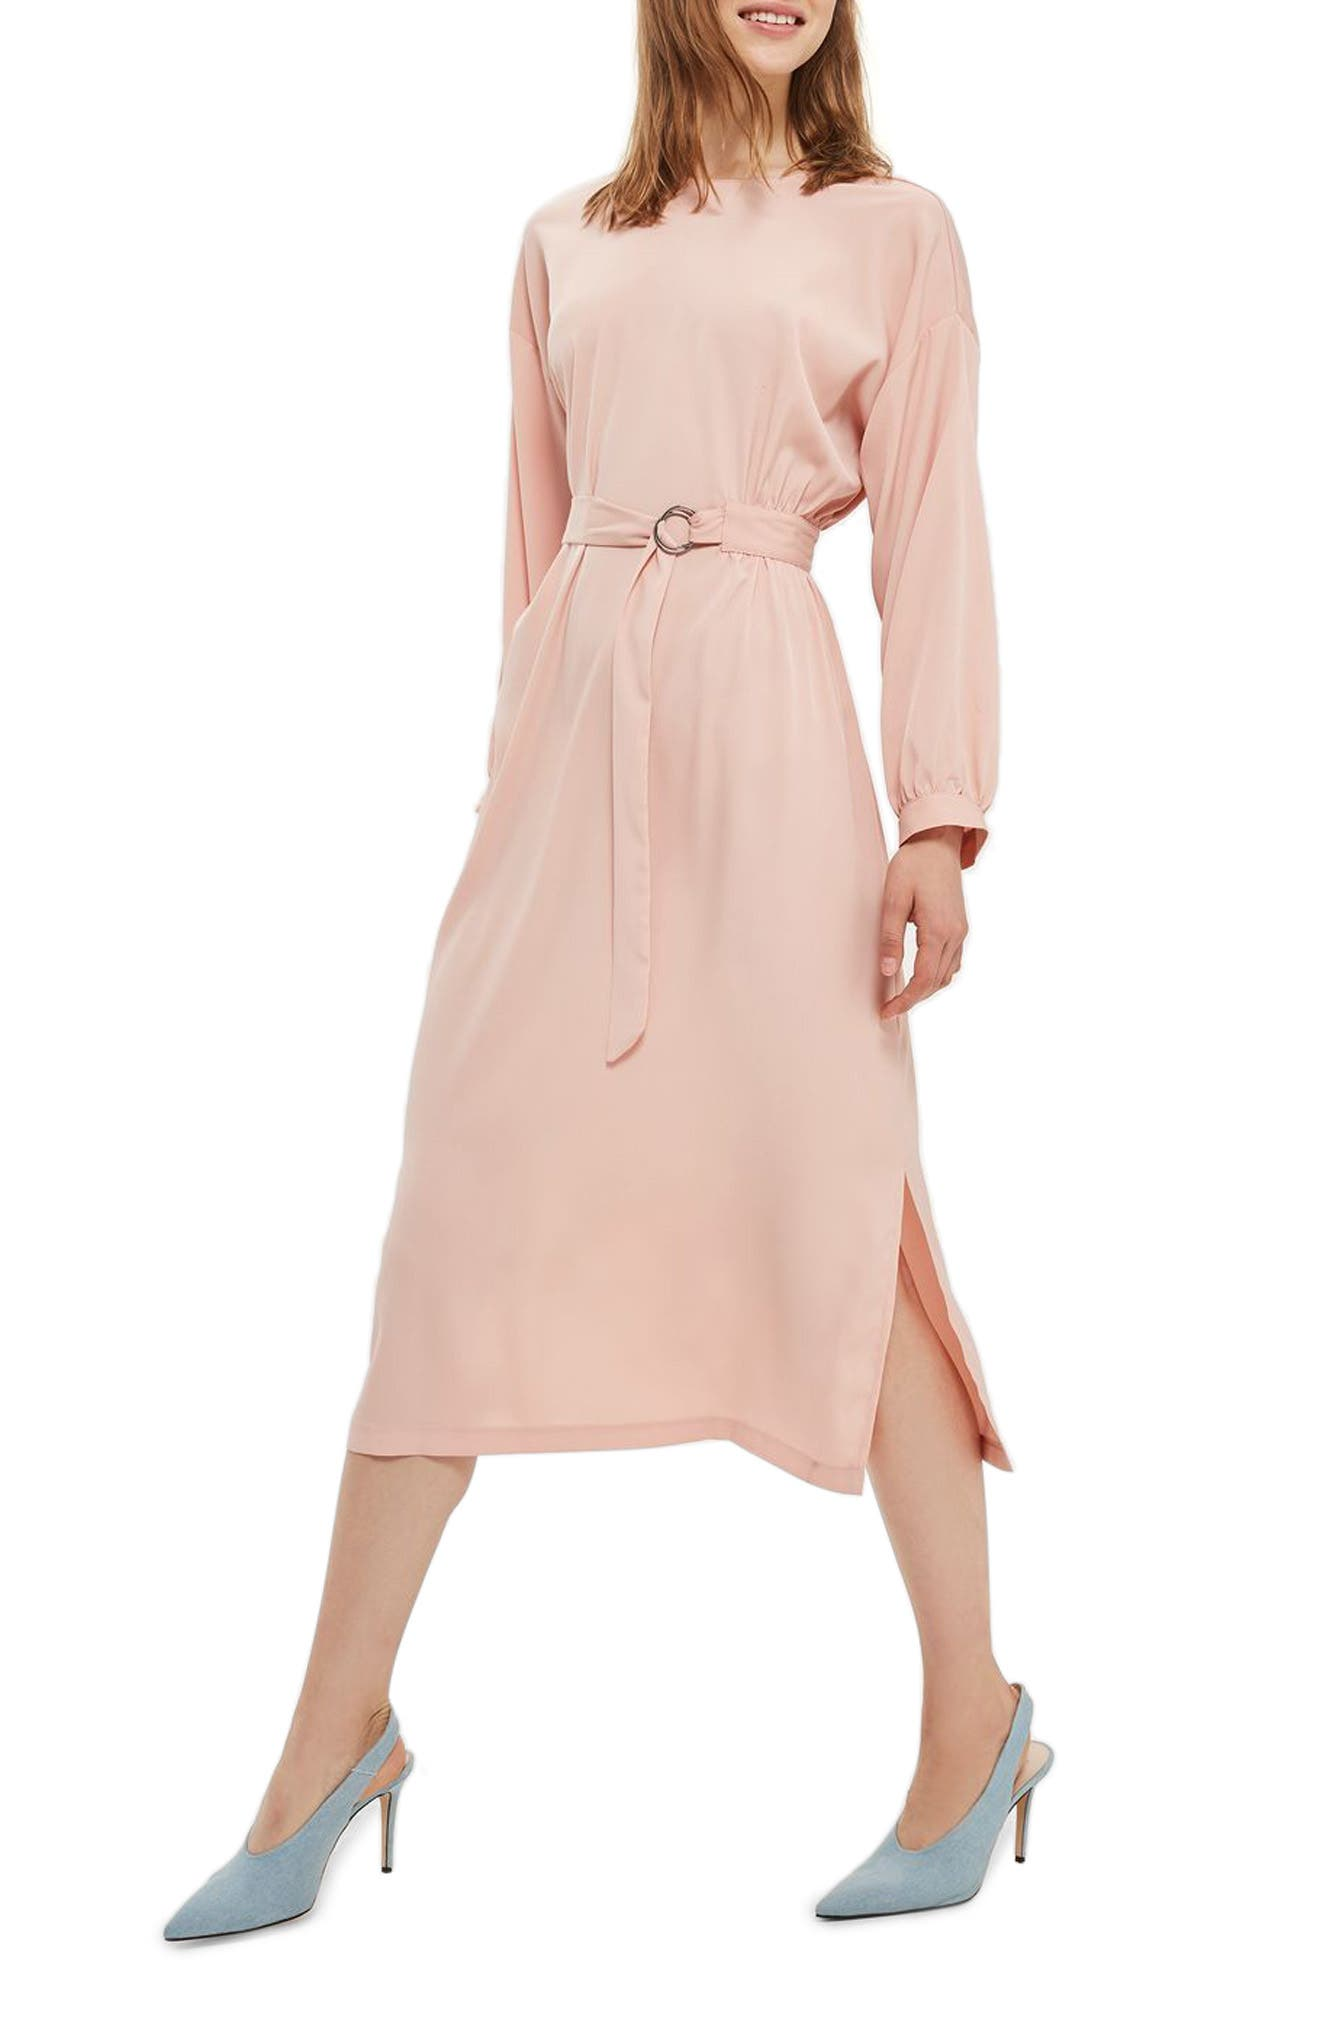 Topshop Dusty Belted Midi Dress